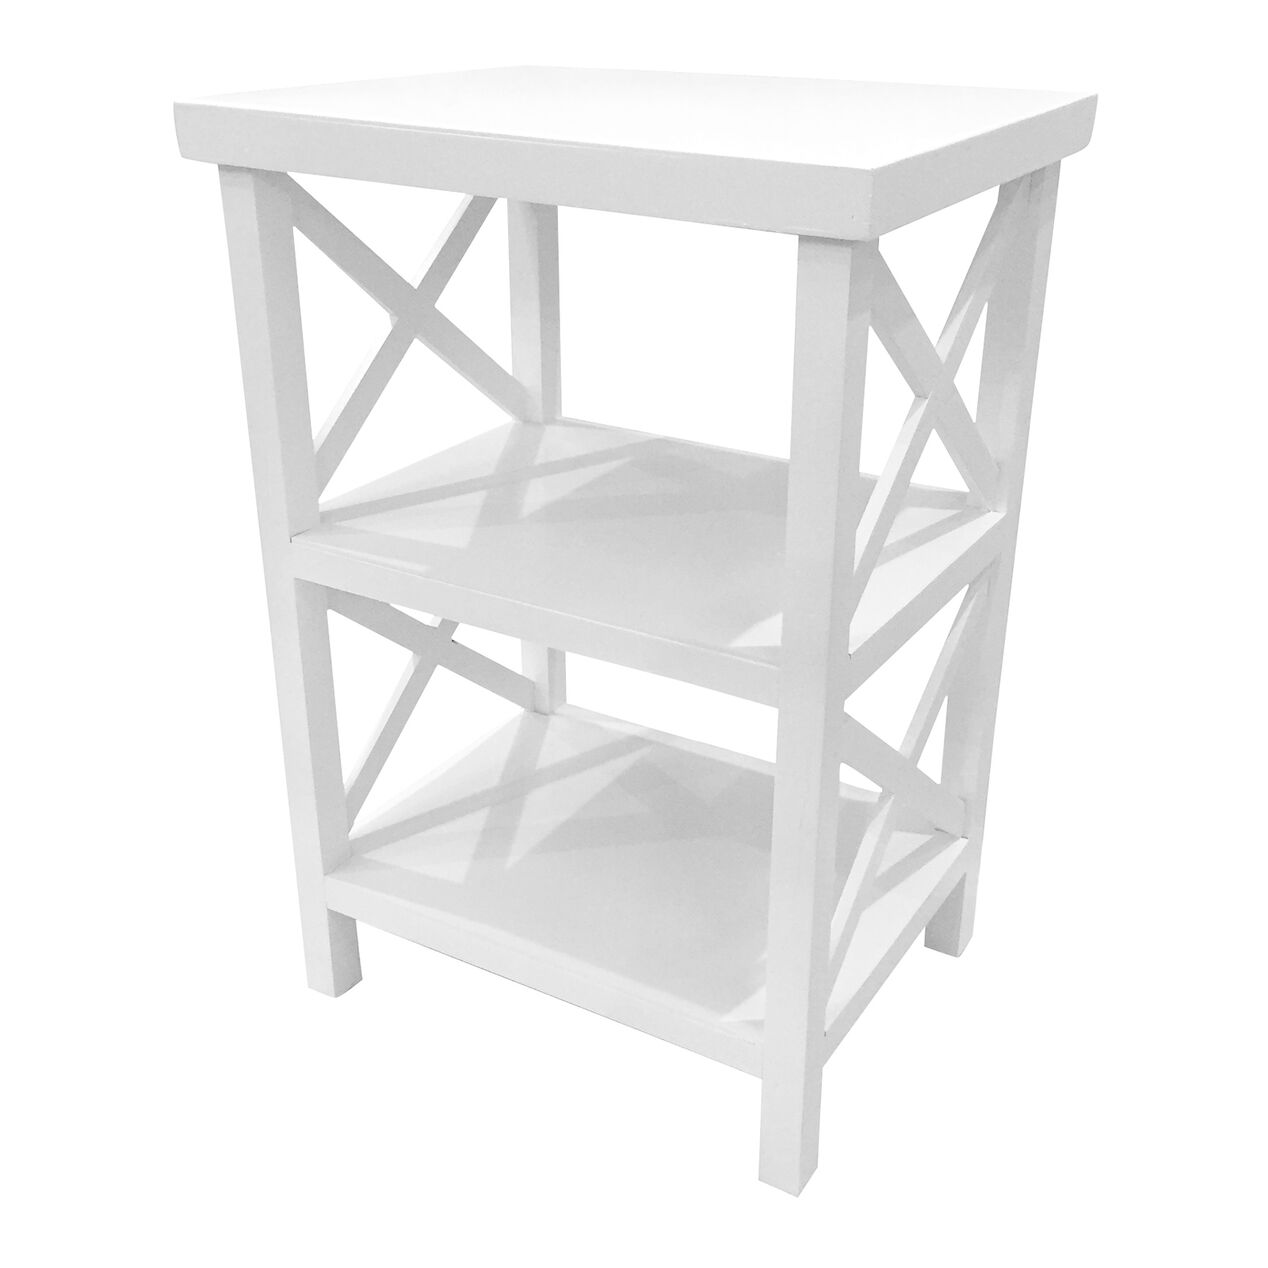 White wood x side shelves 25 in at home for White side table